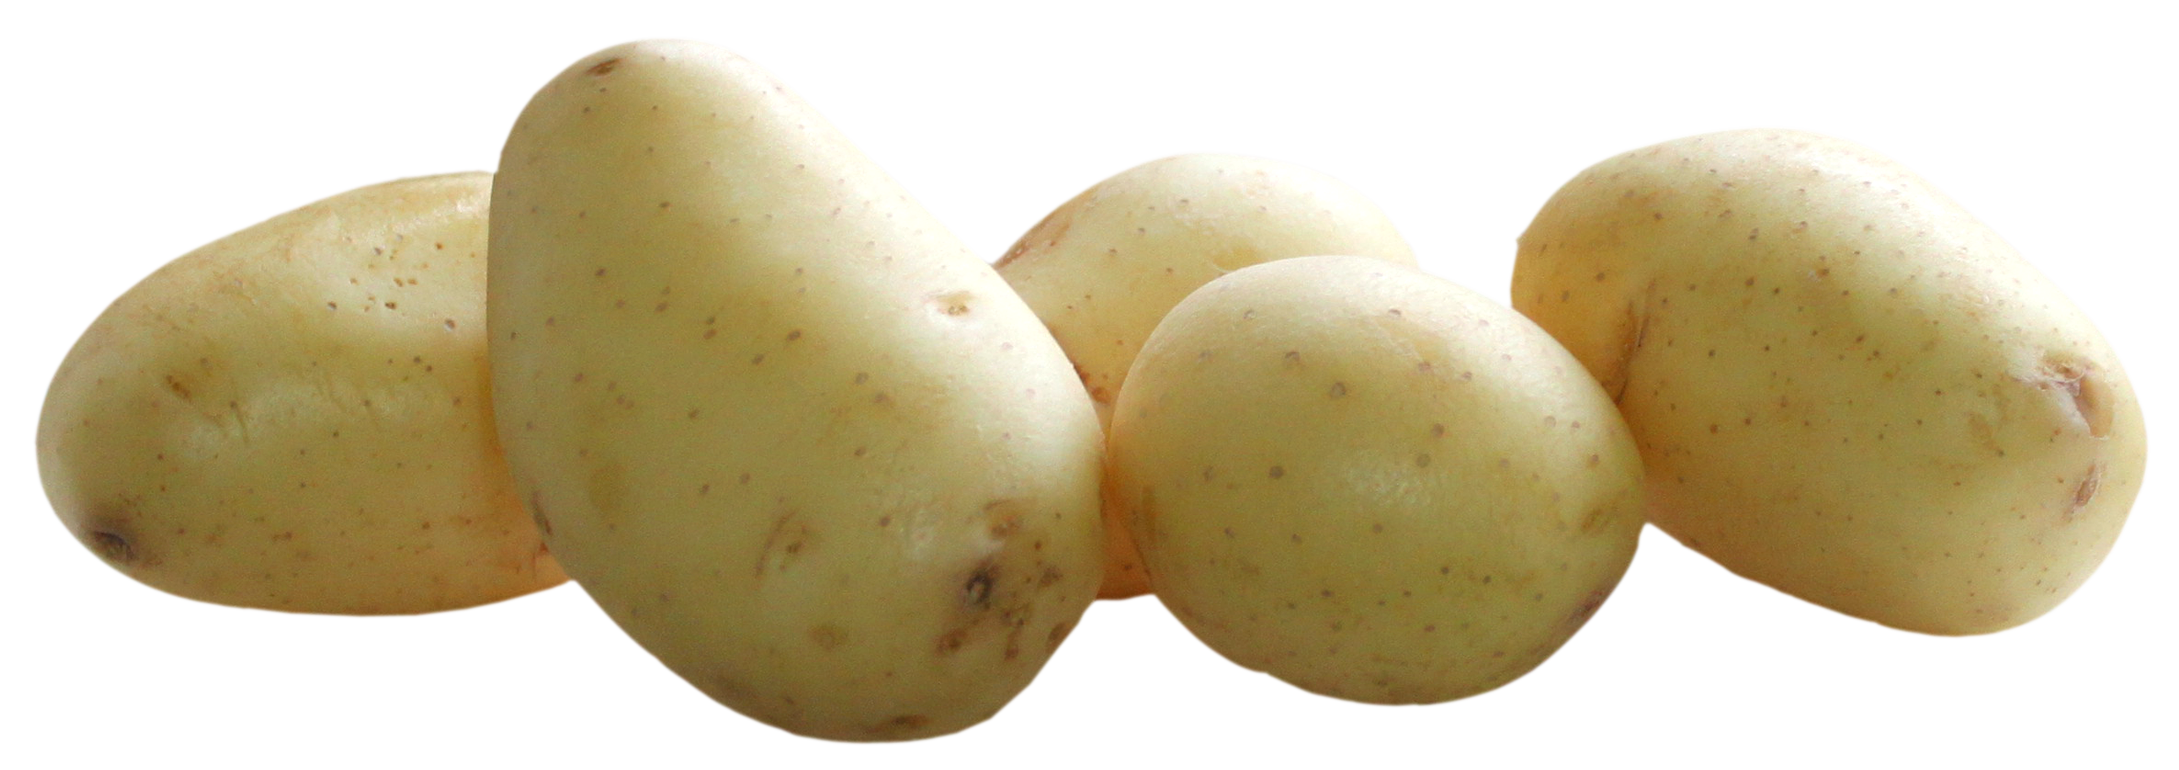 Potatoes png picture gallery. Vegetables clipart potato